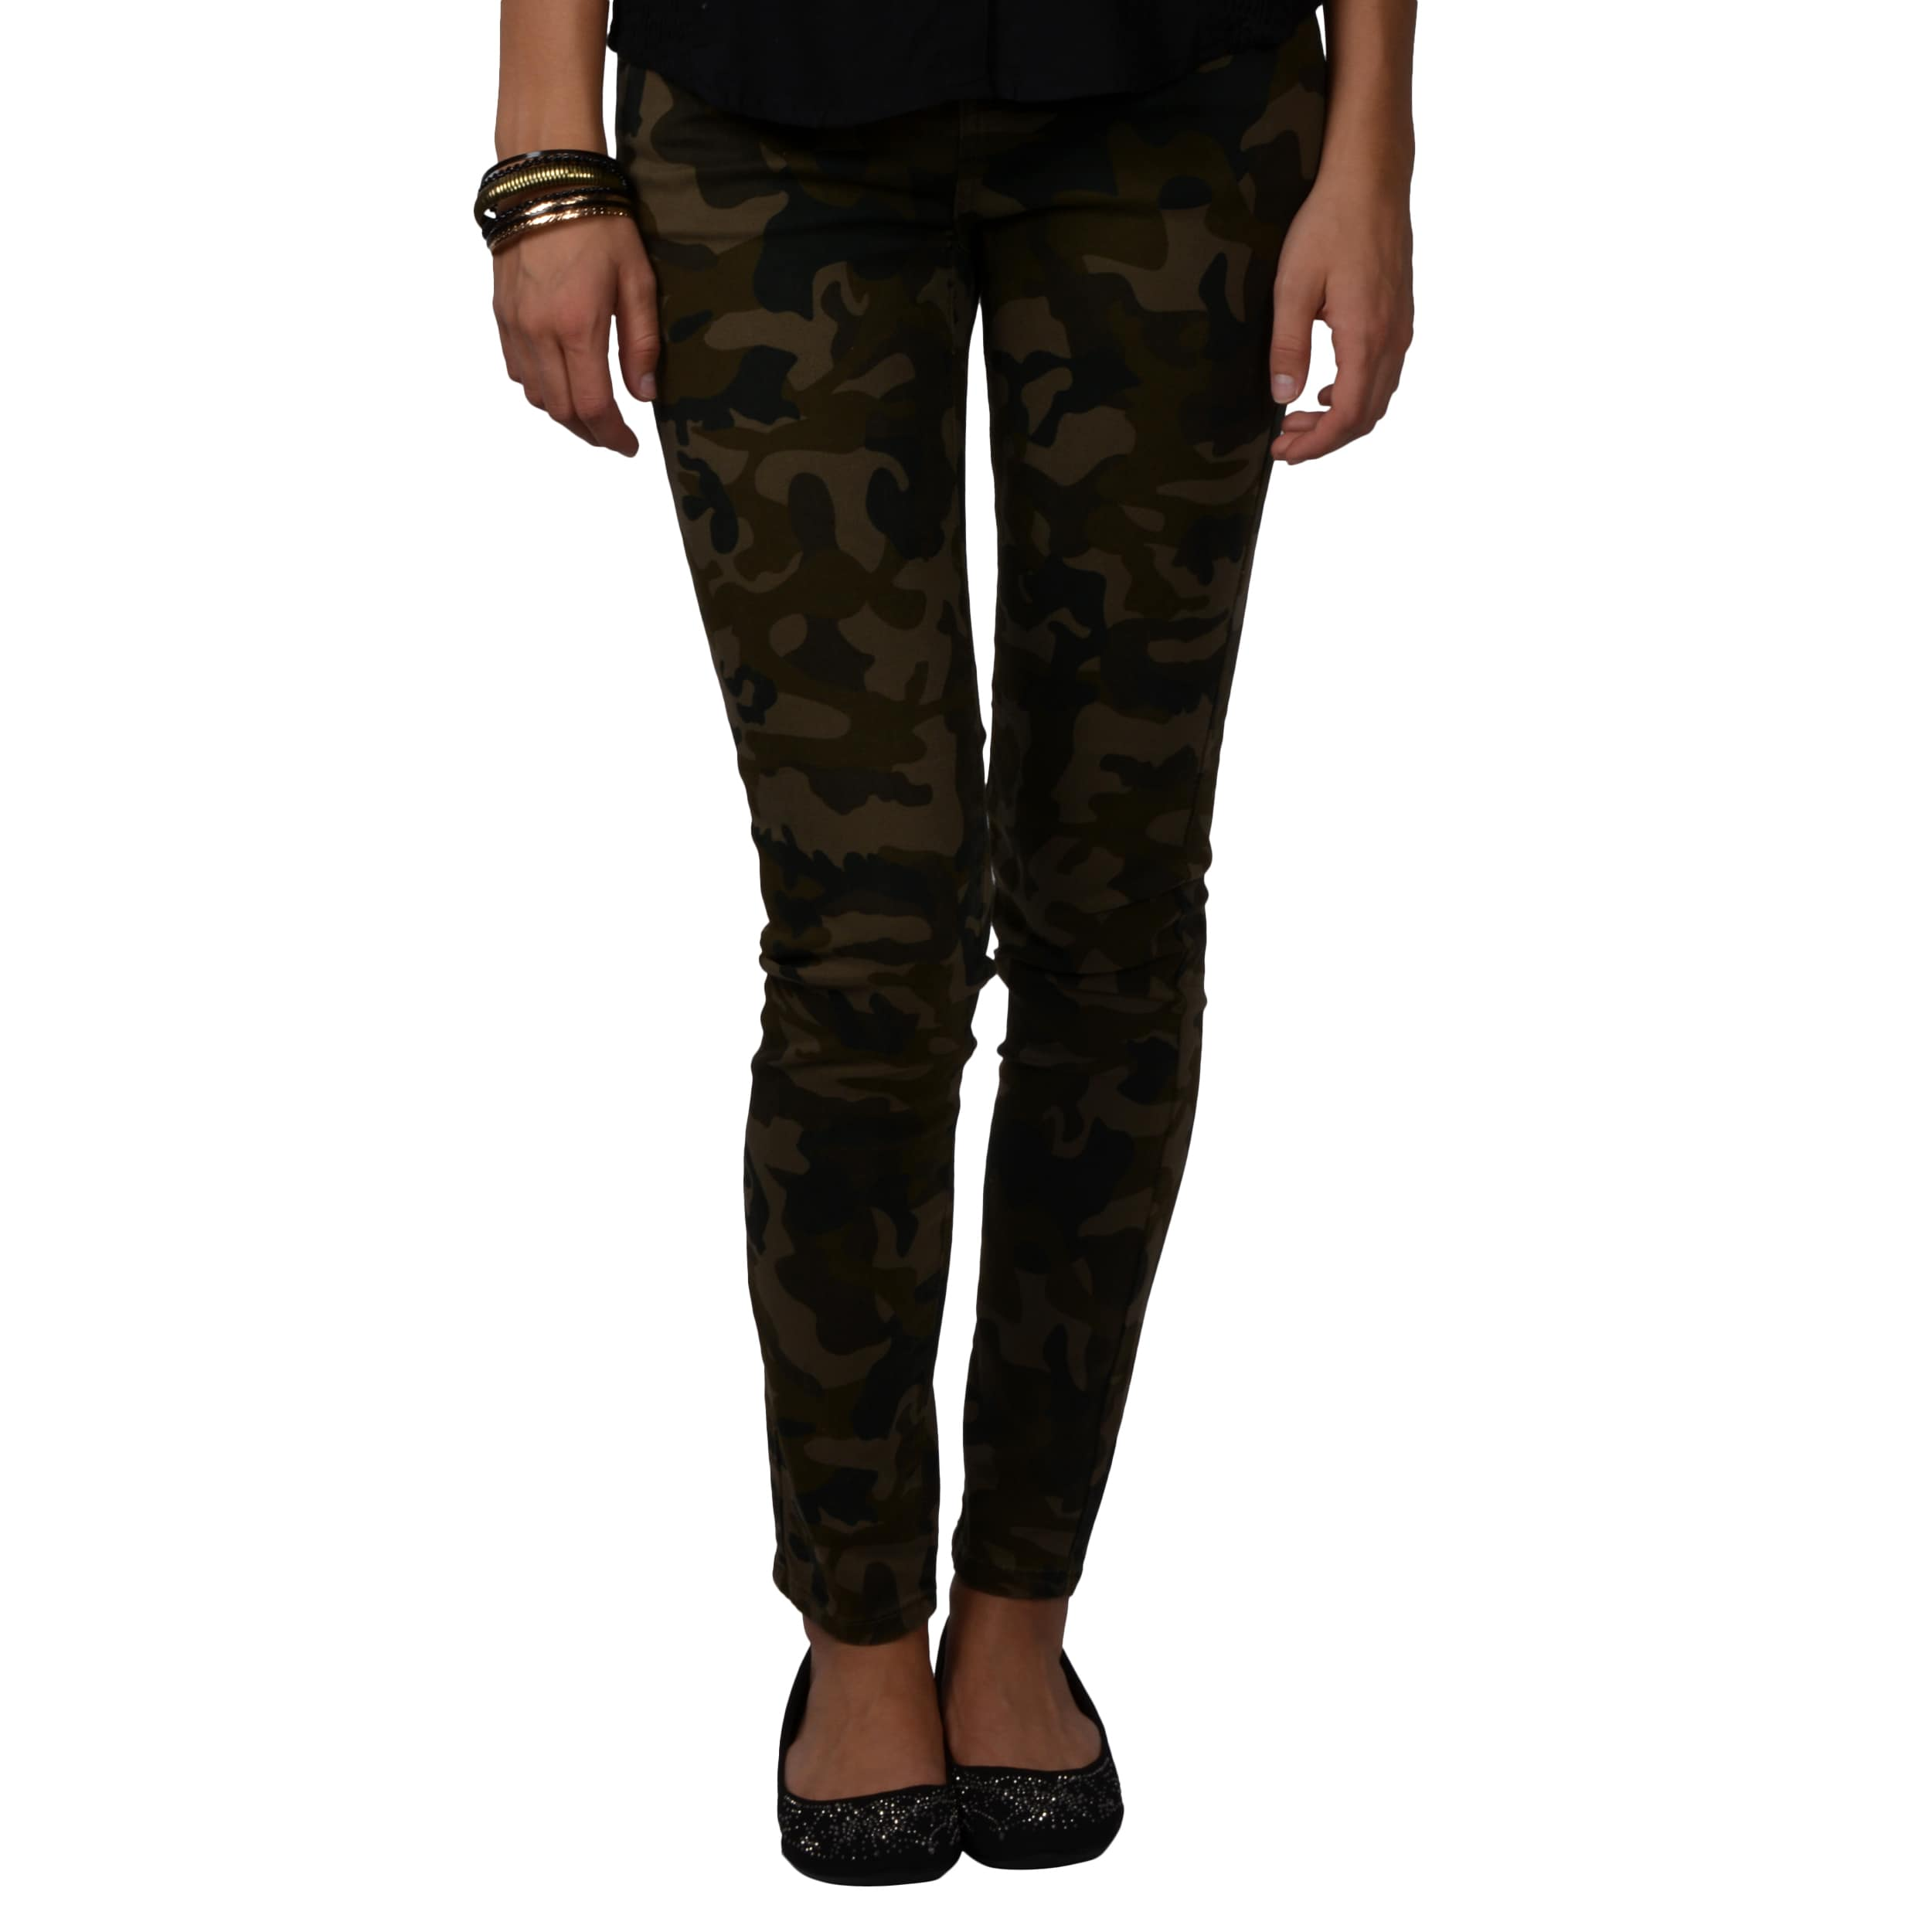 Journee Collection Juniors Camo Print Stretchy Skinny Pants